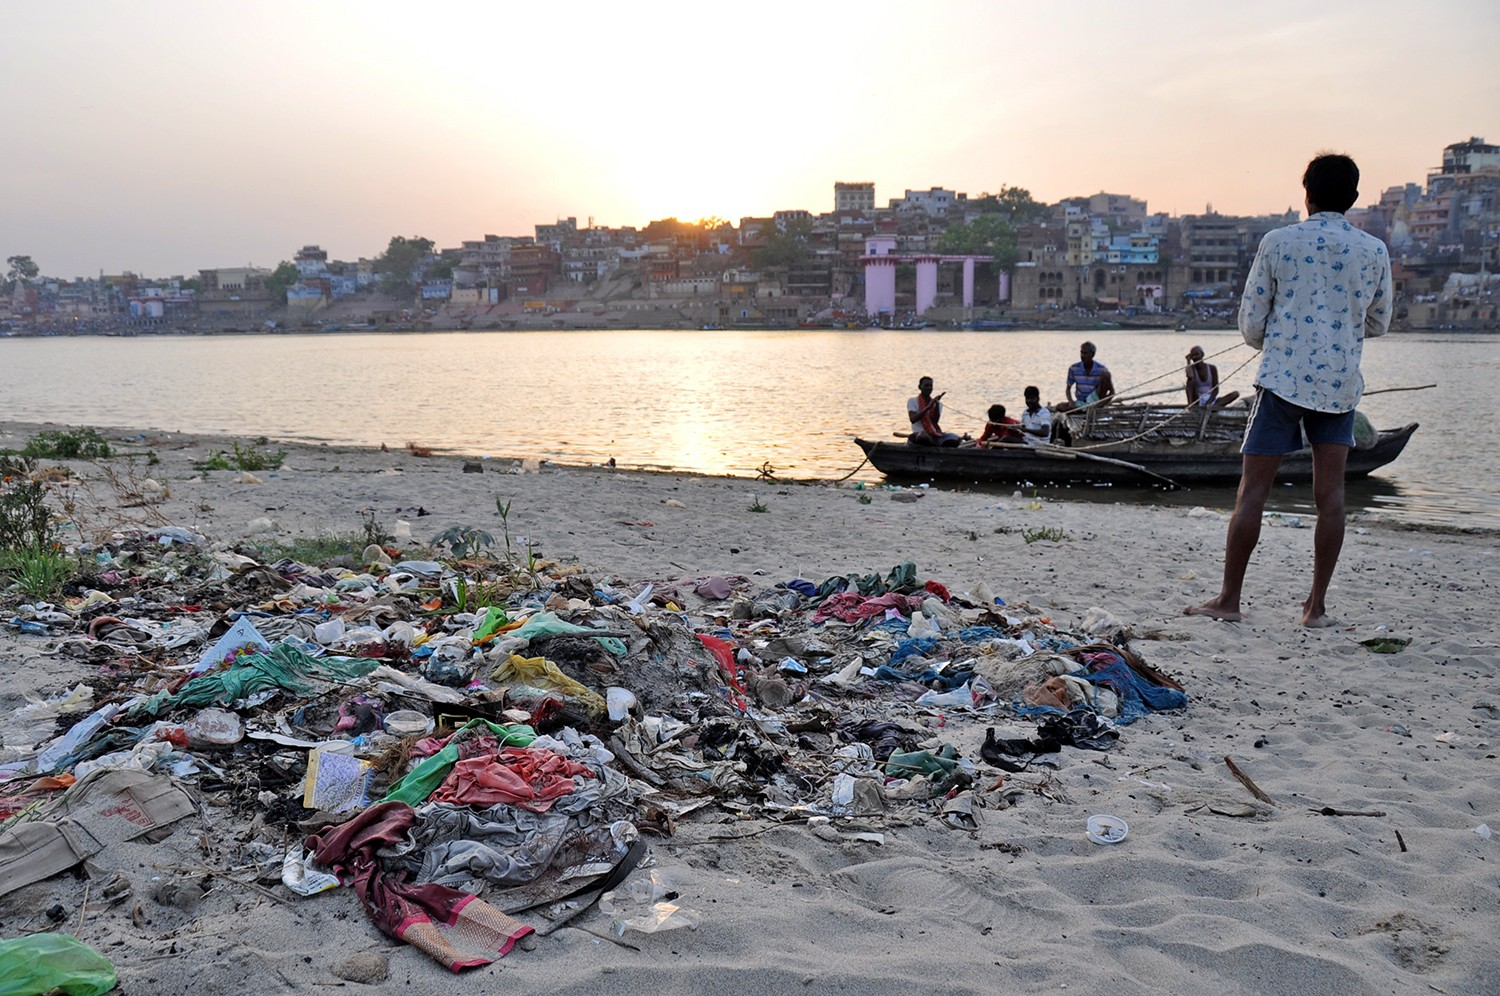 Garbage by the Ganges River in India